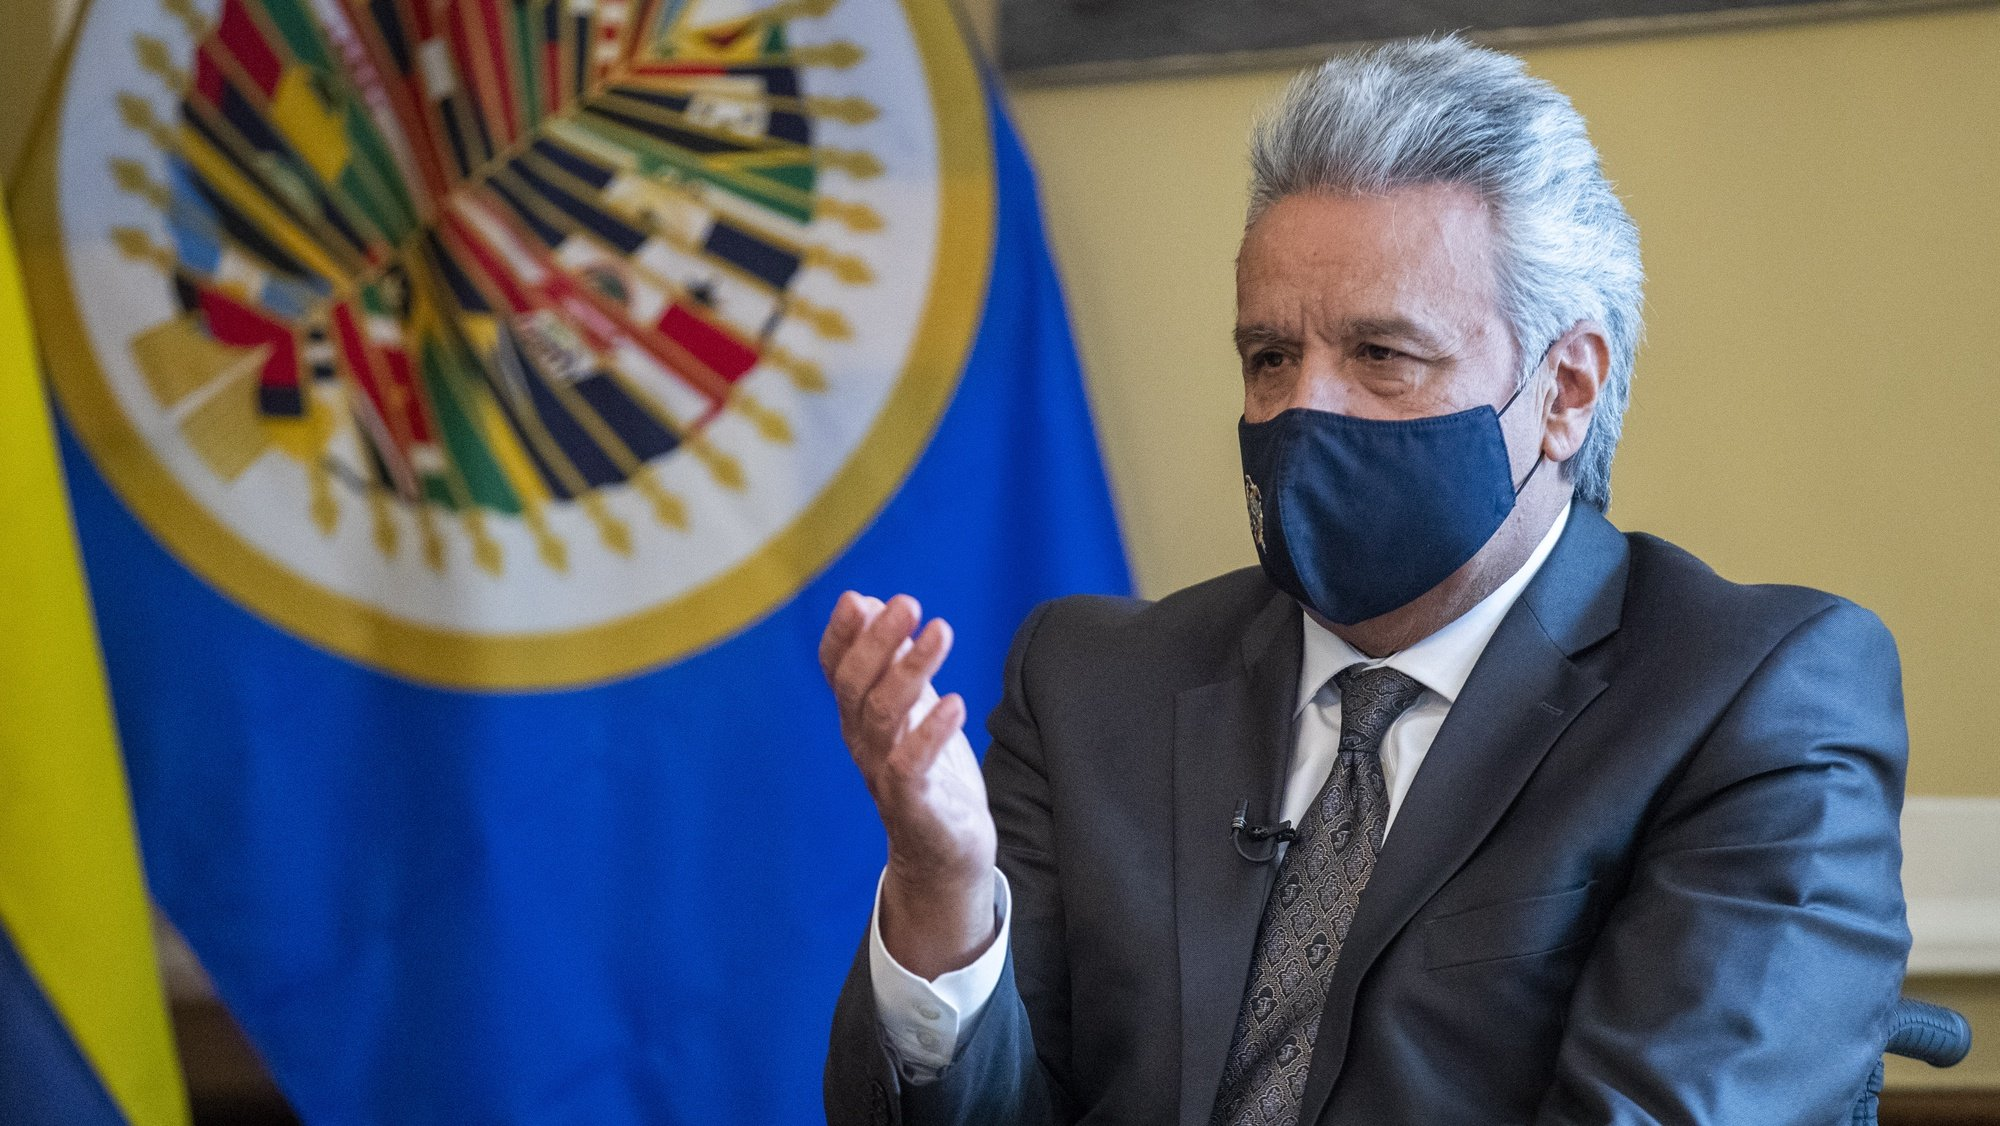 epa08969612 Ecuadorian President Lenin Moreno during a meeting with OAS Secretary General Luis Almagro at the Embassy of Ecuador in Washington, DC, USA, 27 January 2021. President Moreno, reaffirmed in Washington the alliance with multilateral organizations such as the International Monetary Fund (IMF), the World Bank (WB) and the Inter-American Development Bank (IDB) as a decision of the State before leaving power next May.  EPA/SHAWN THEW